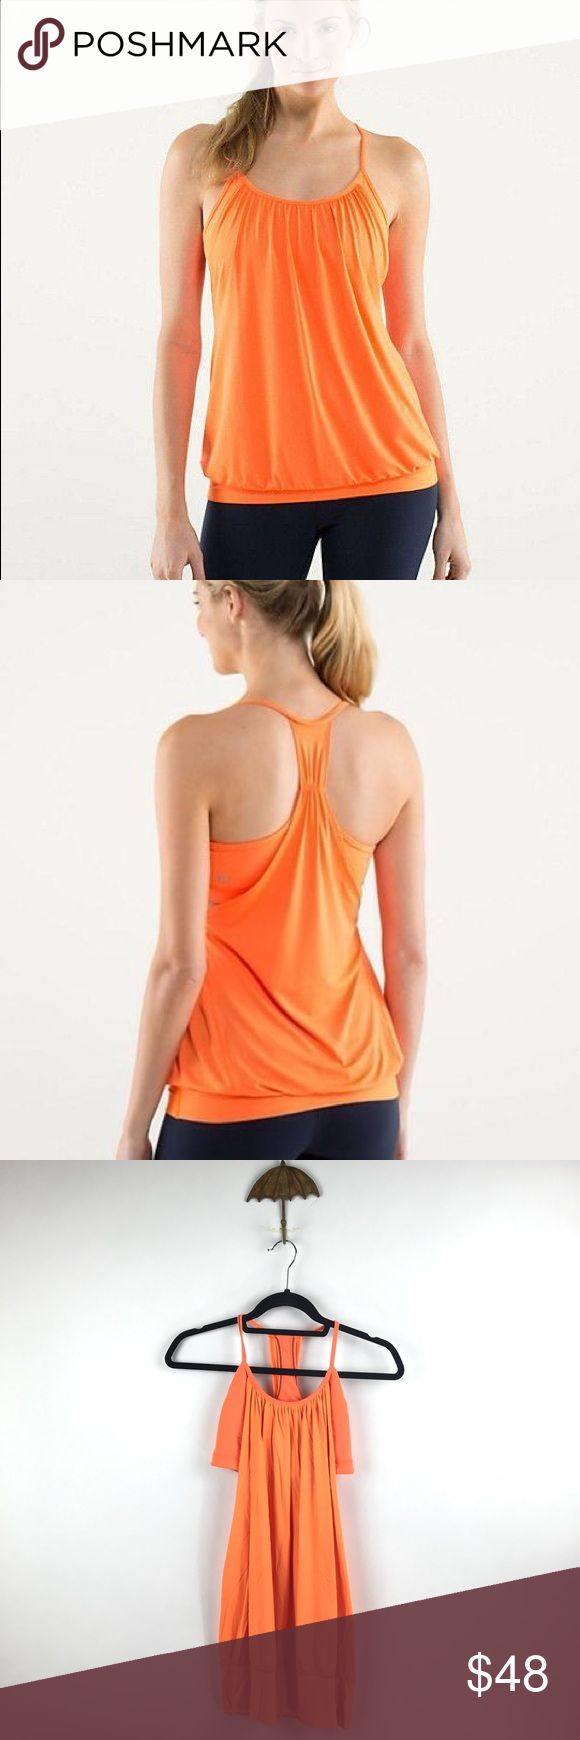 Lululemon No Limits Tank In Pizazz Orange 10 A22 Lululemon No Limits Tank In Pizazz Women's Sz 10 Top Orange Built In Bra A22  In good preowned condition with no known flaws and light overall wear. Size Tag is missing but size dot is inside bra, does not include padding for cups. lululemon athletica Tops Tank Tops